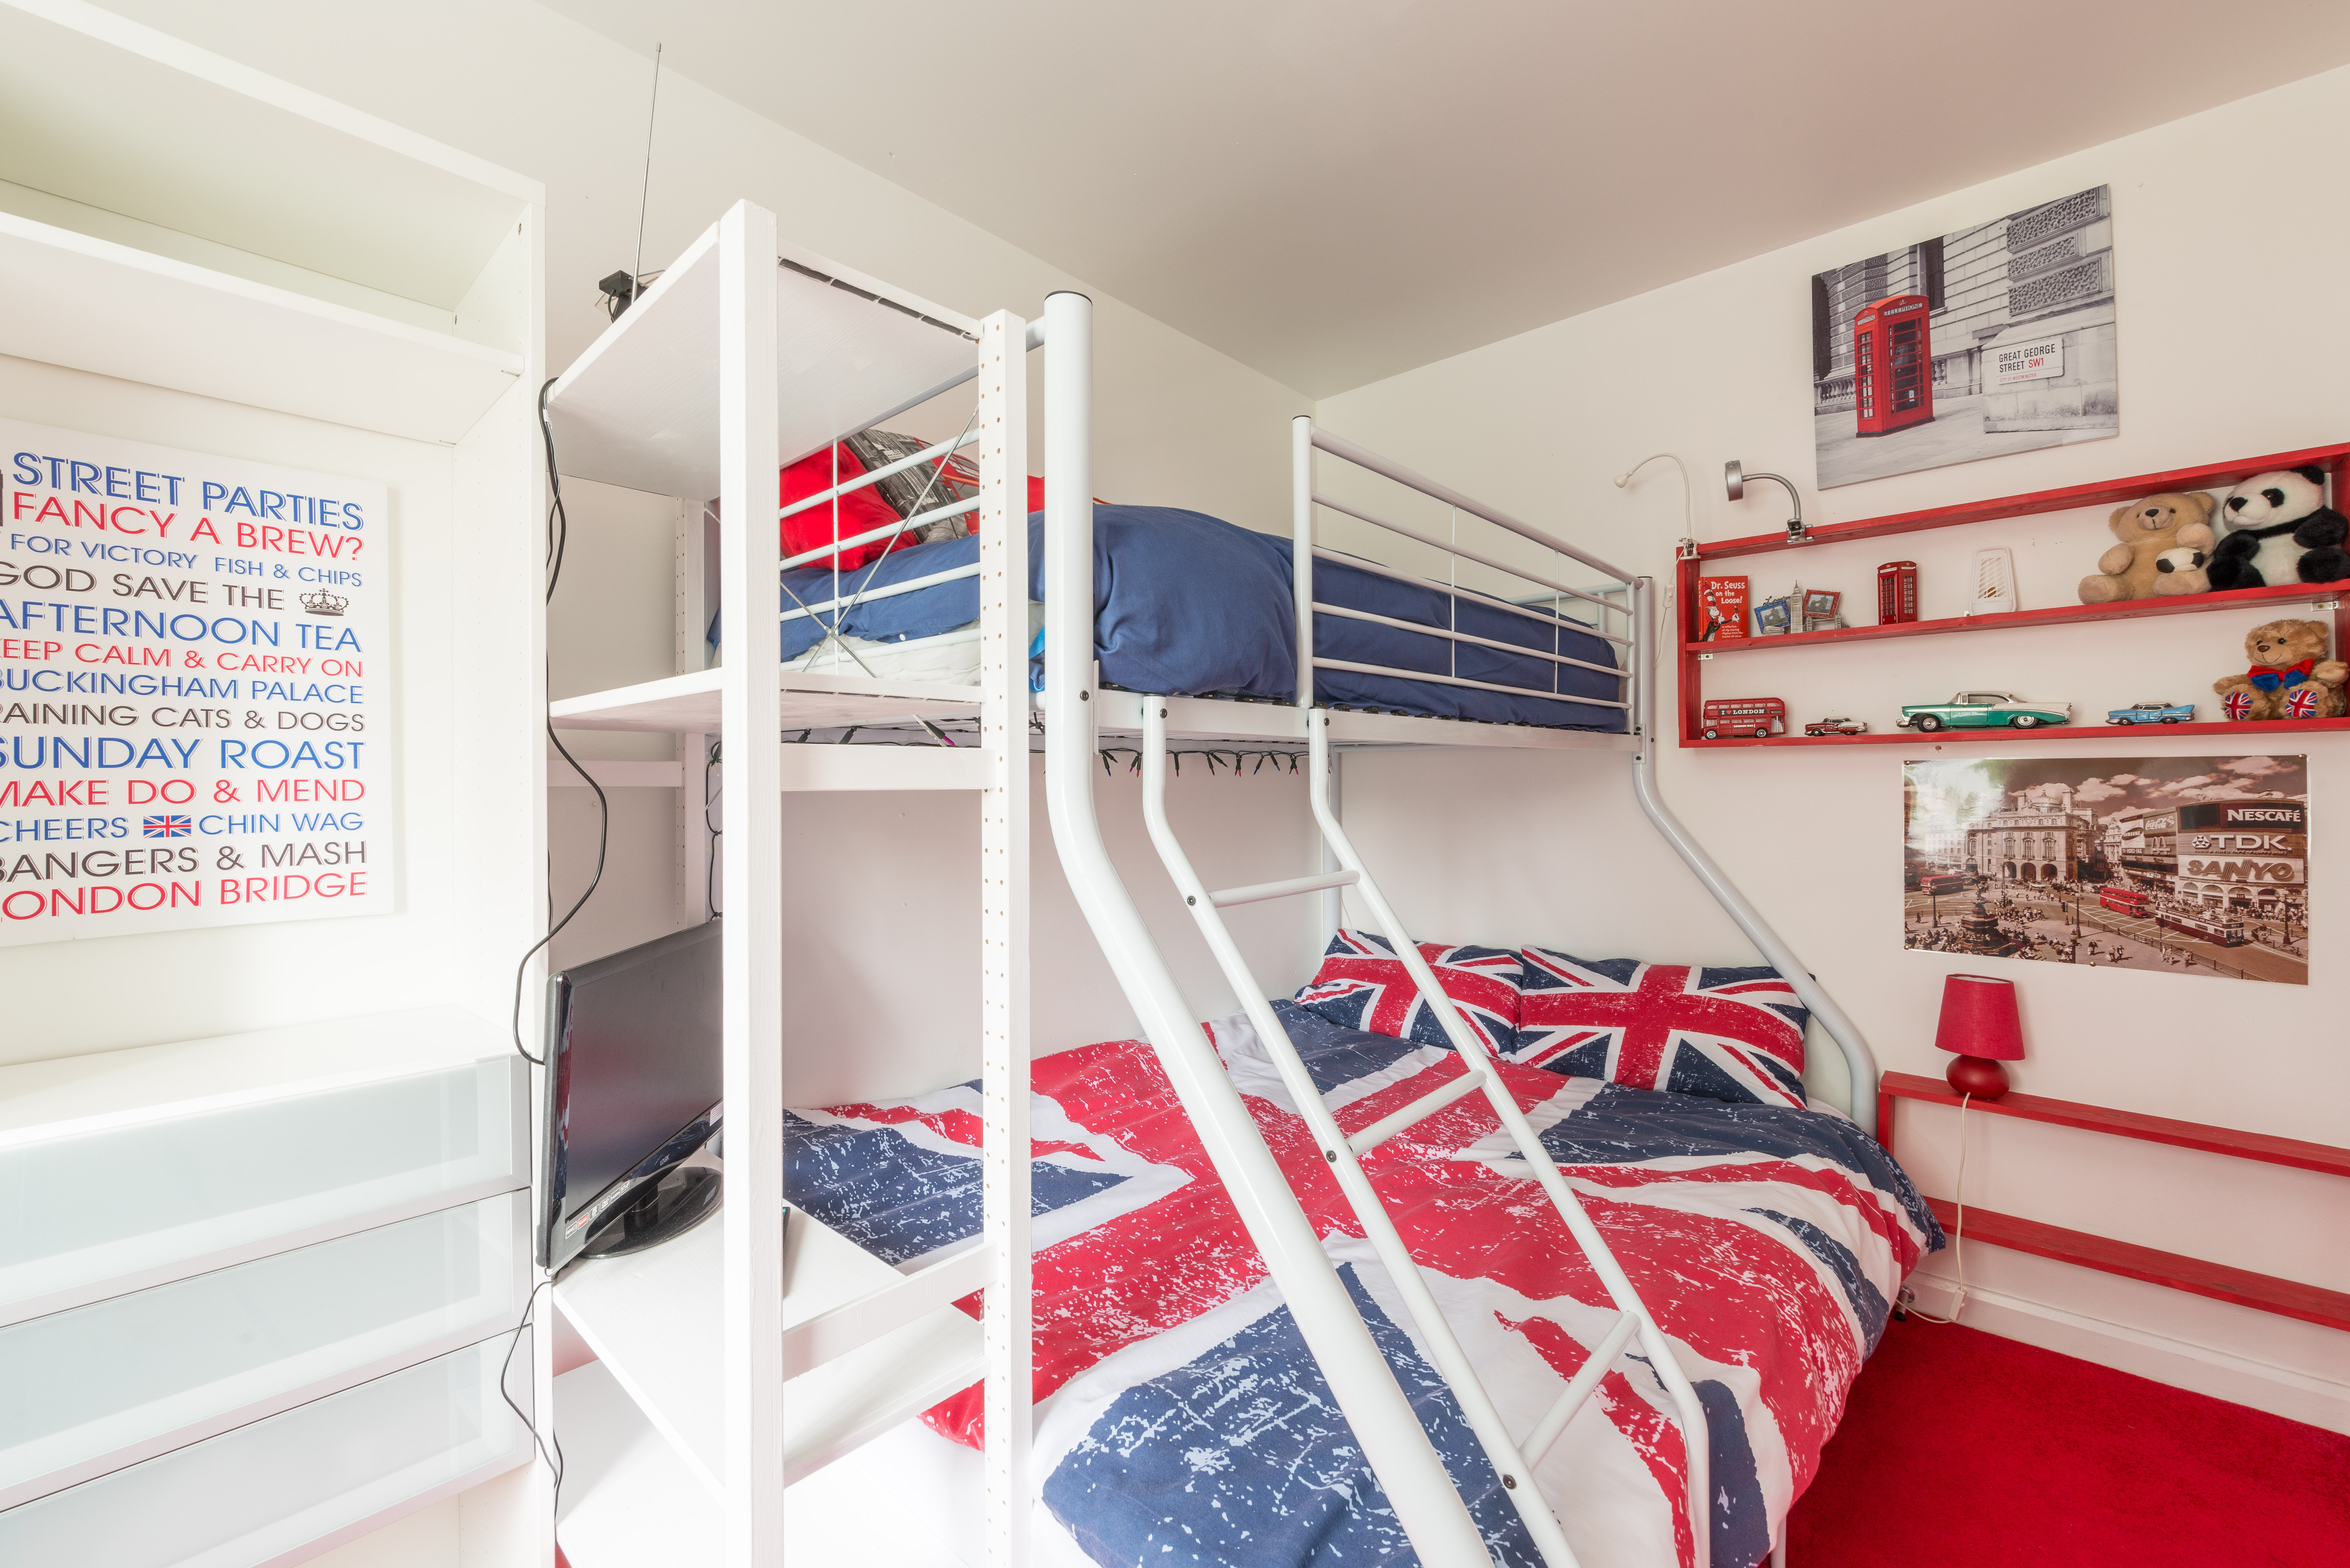 Comfortable Triple Bunk Beds Breakfast In London Townhouses For Rent In London United Kingdom